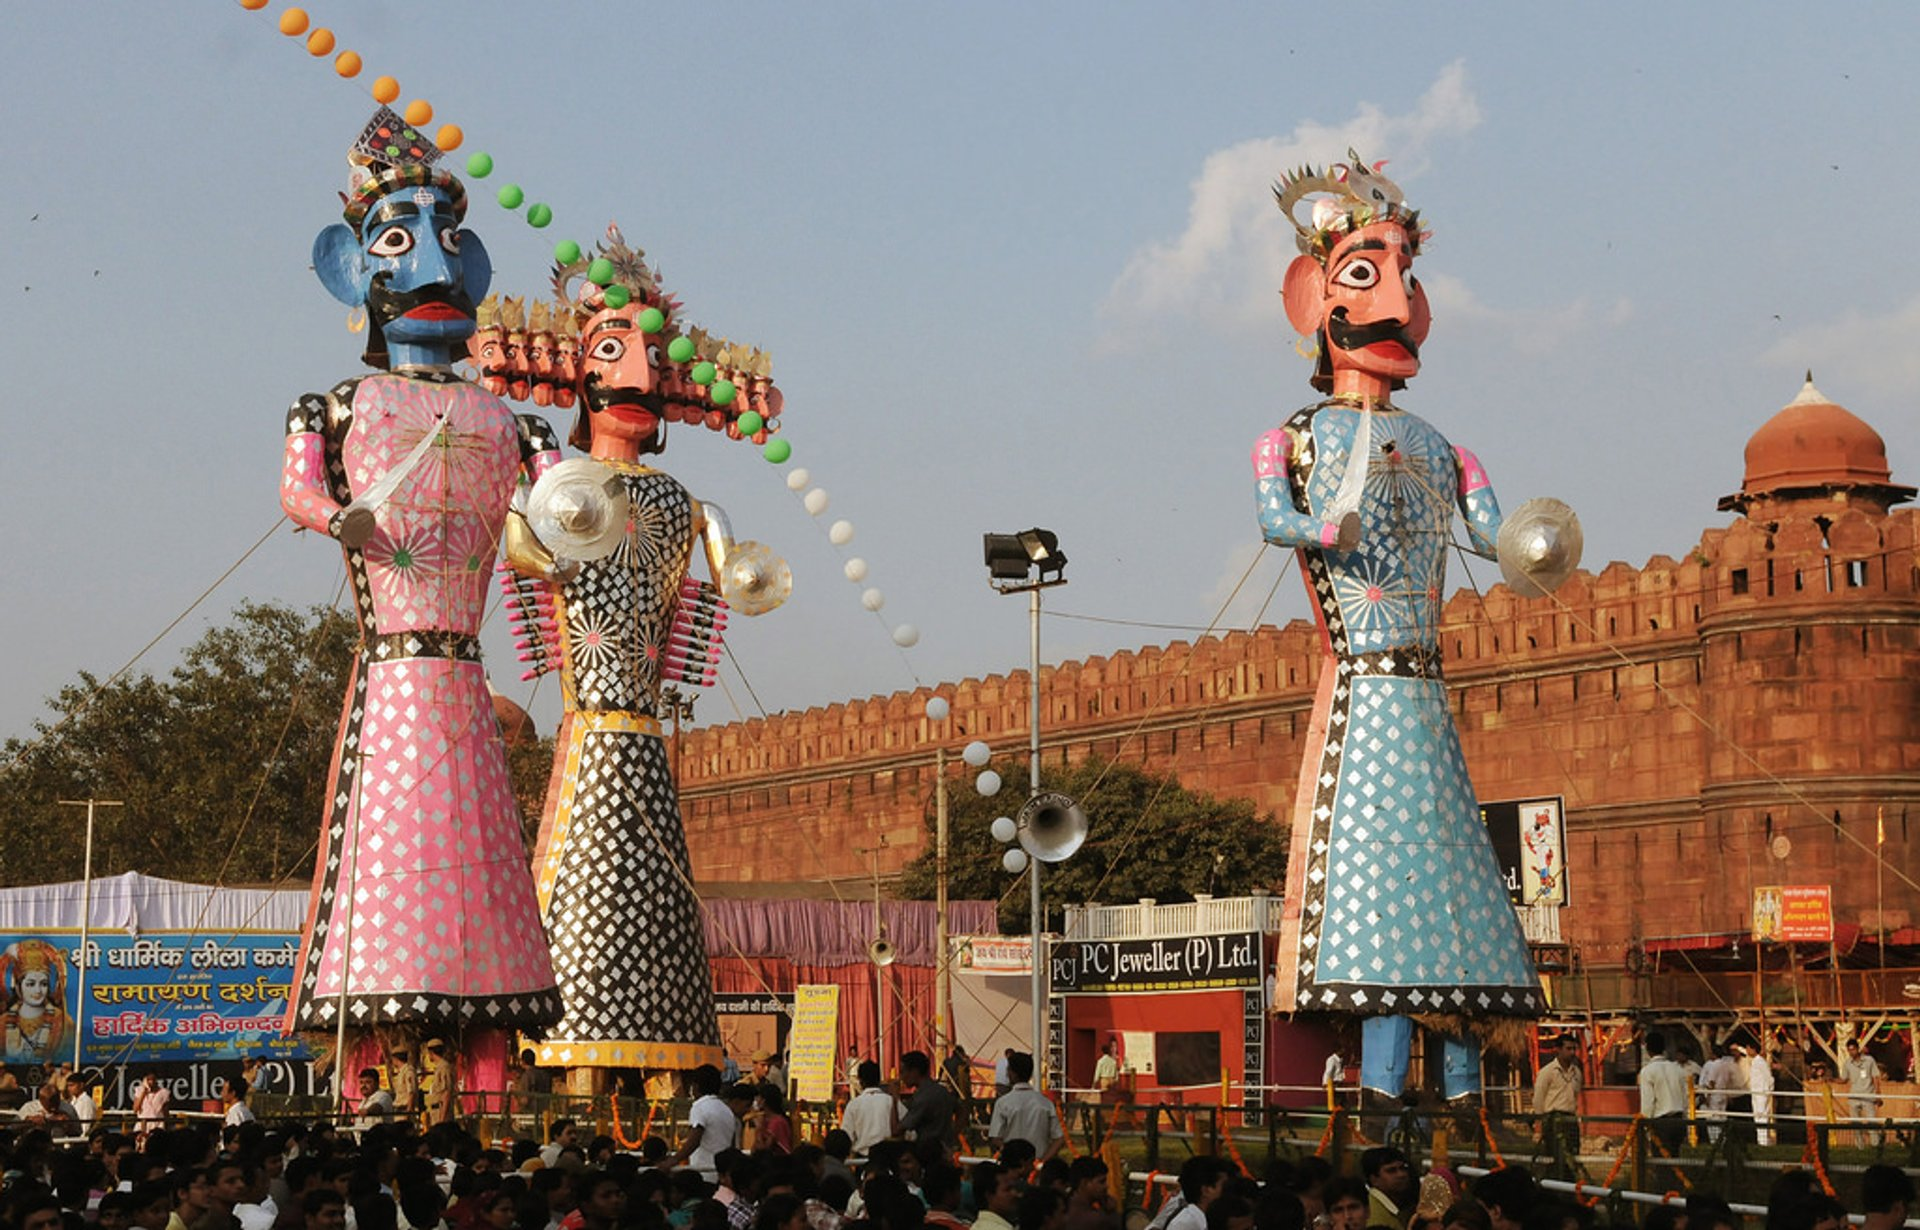 Dussehra (Vijaya Dashami, Dasara, or Dashain) in India 2019 - Best Time